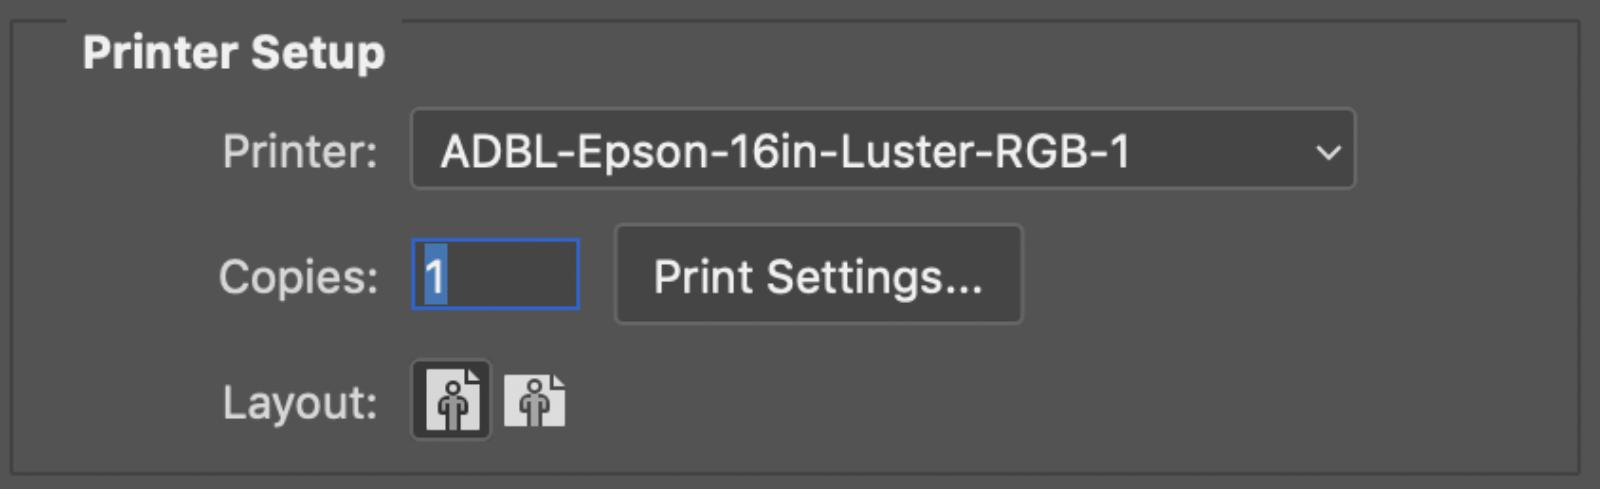 Layout Options and Print Settings Button